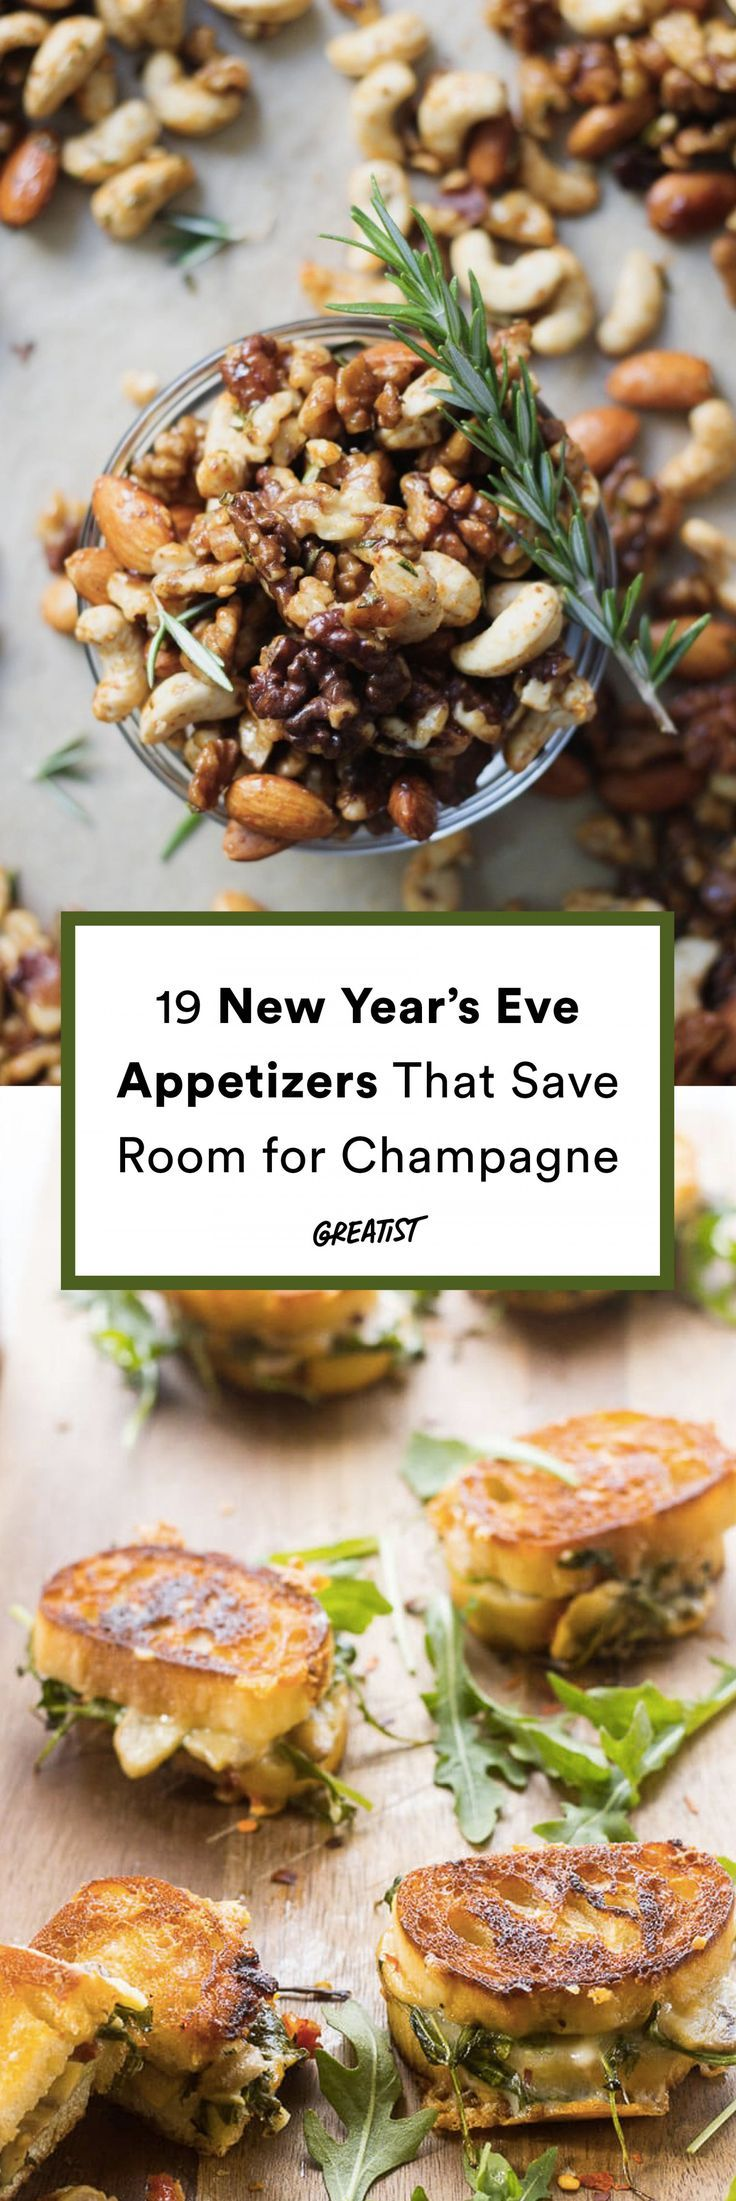 19 New Year's Eve Appetizers That Leave Room for the Champagne